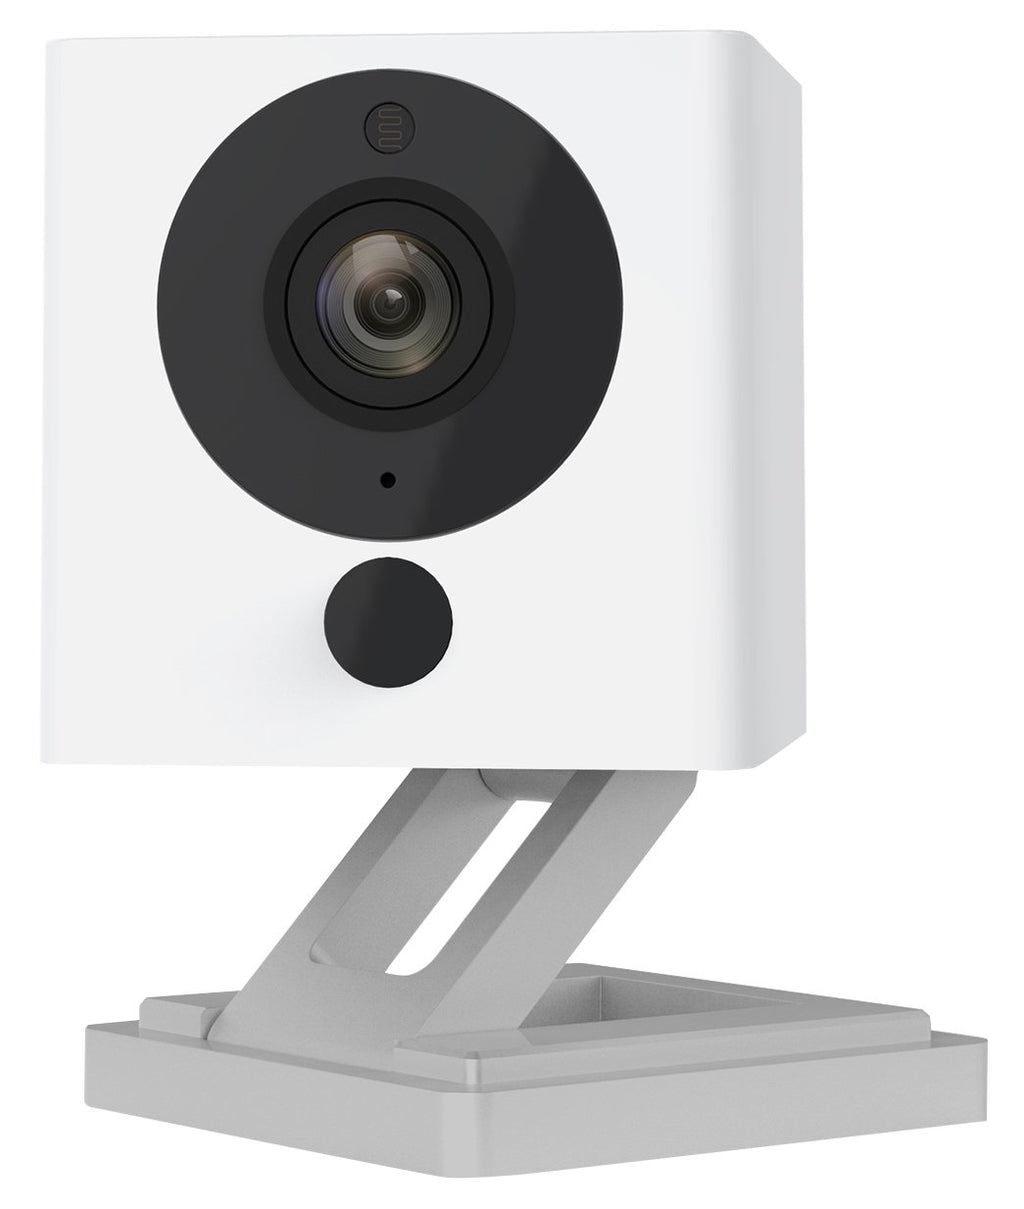 Cam 1080p HD Indoor Wireless Smart Home Camera with Night Vision, 2-Way Audio, Works with Alexa